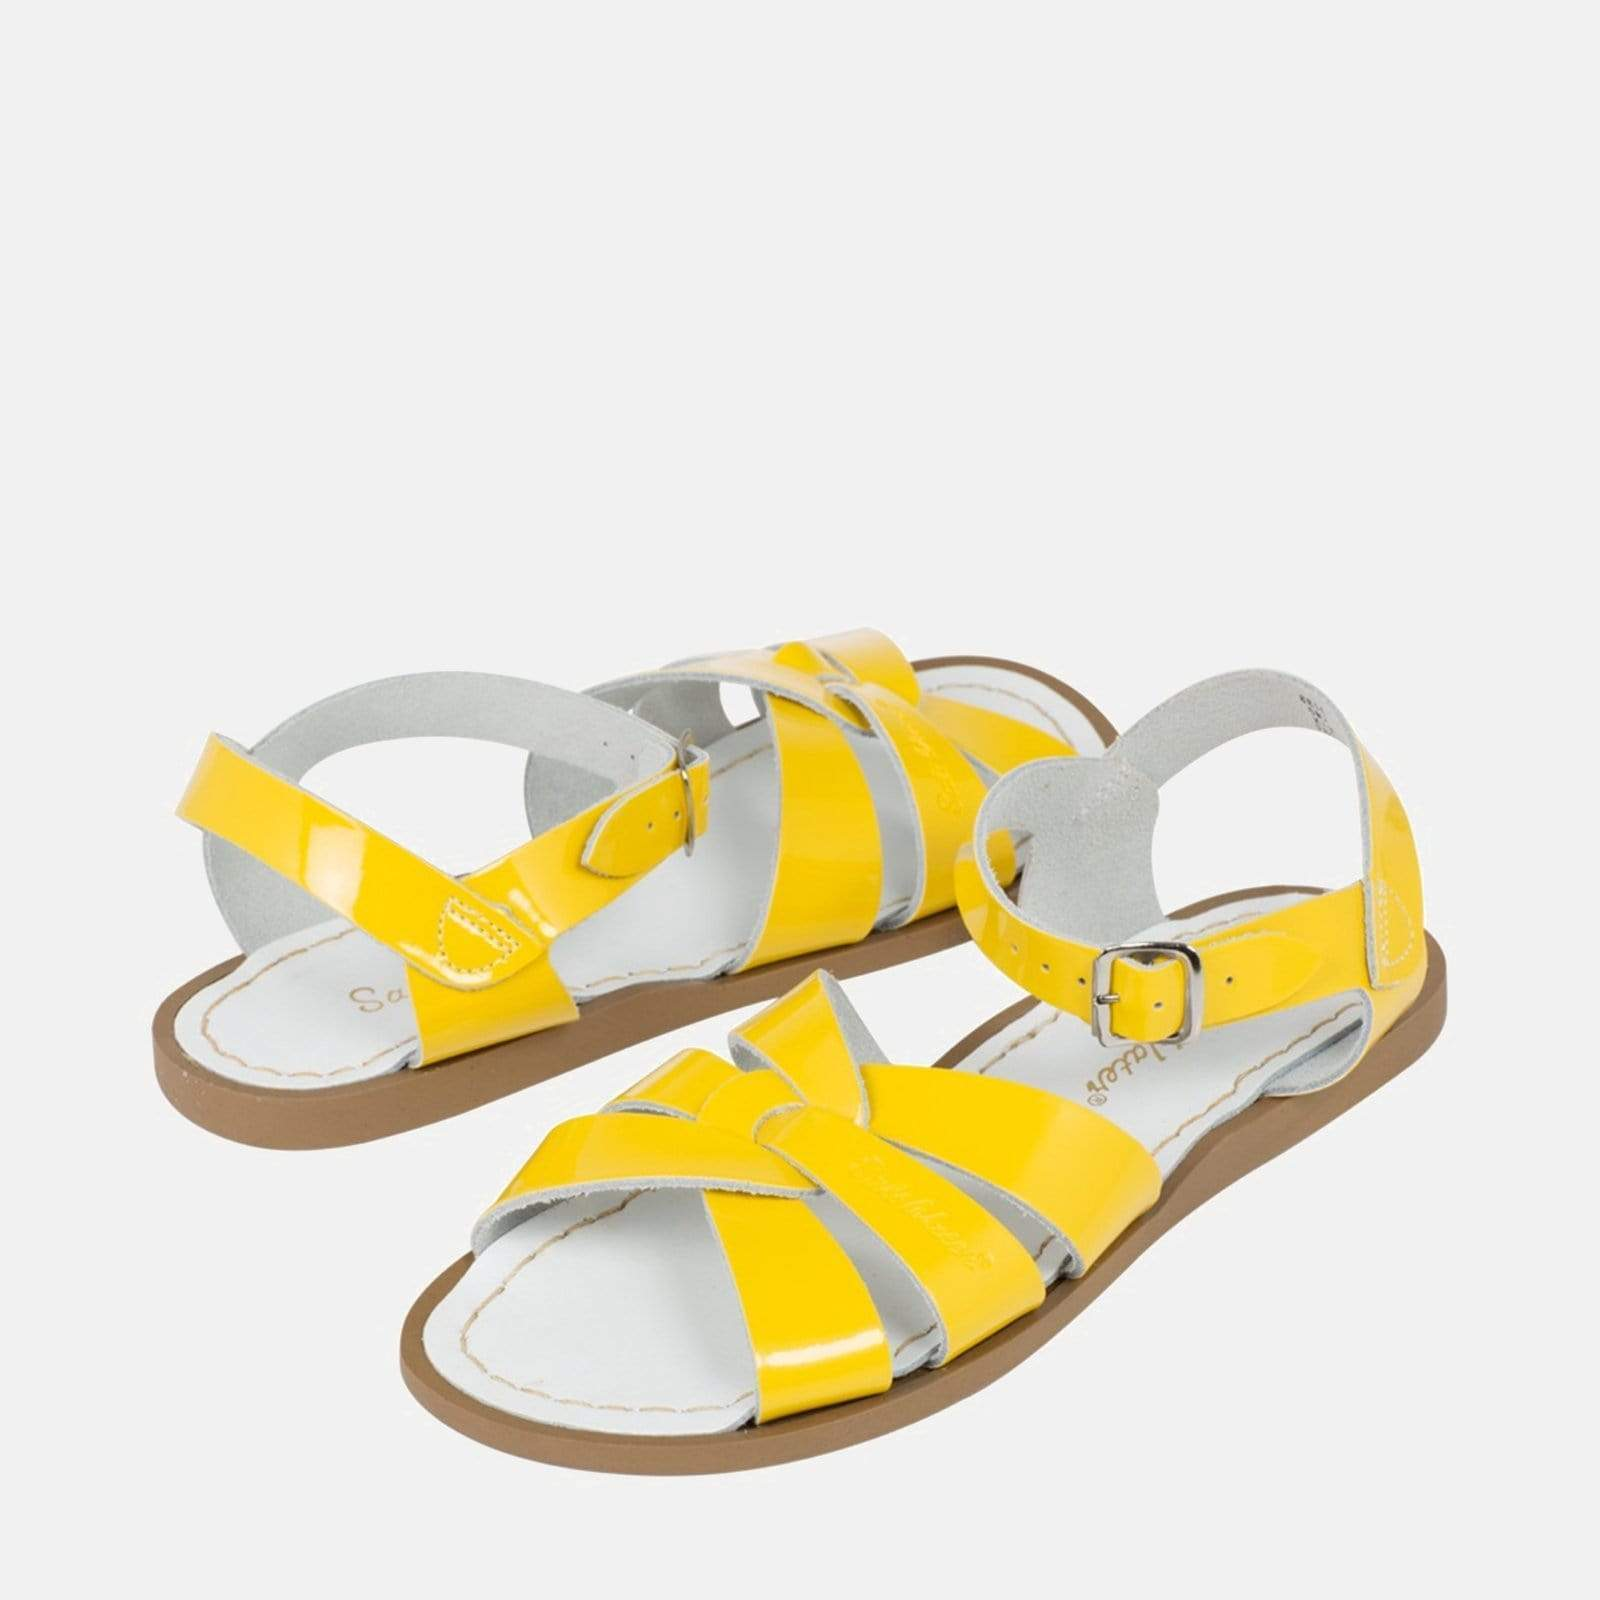 Salt-Water Footwear Salt-Water Original Shiny Yellow